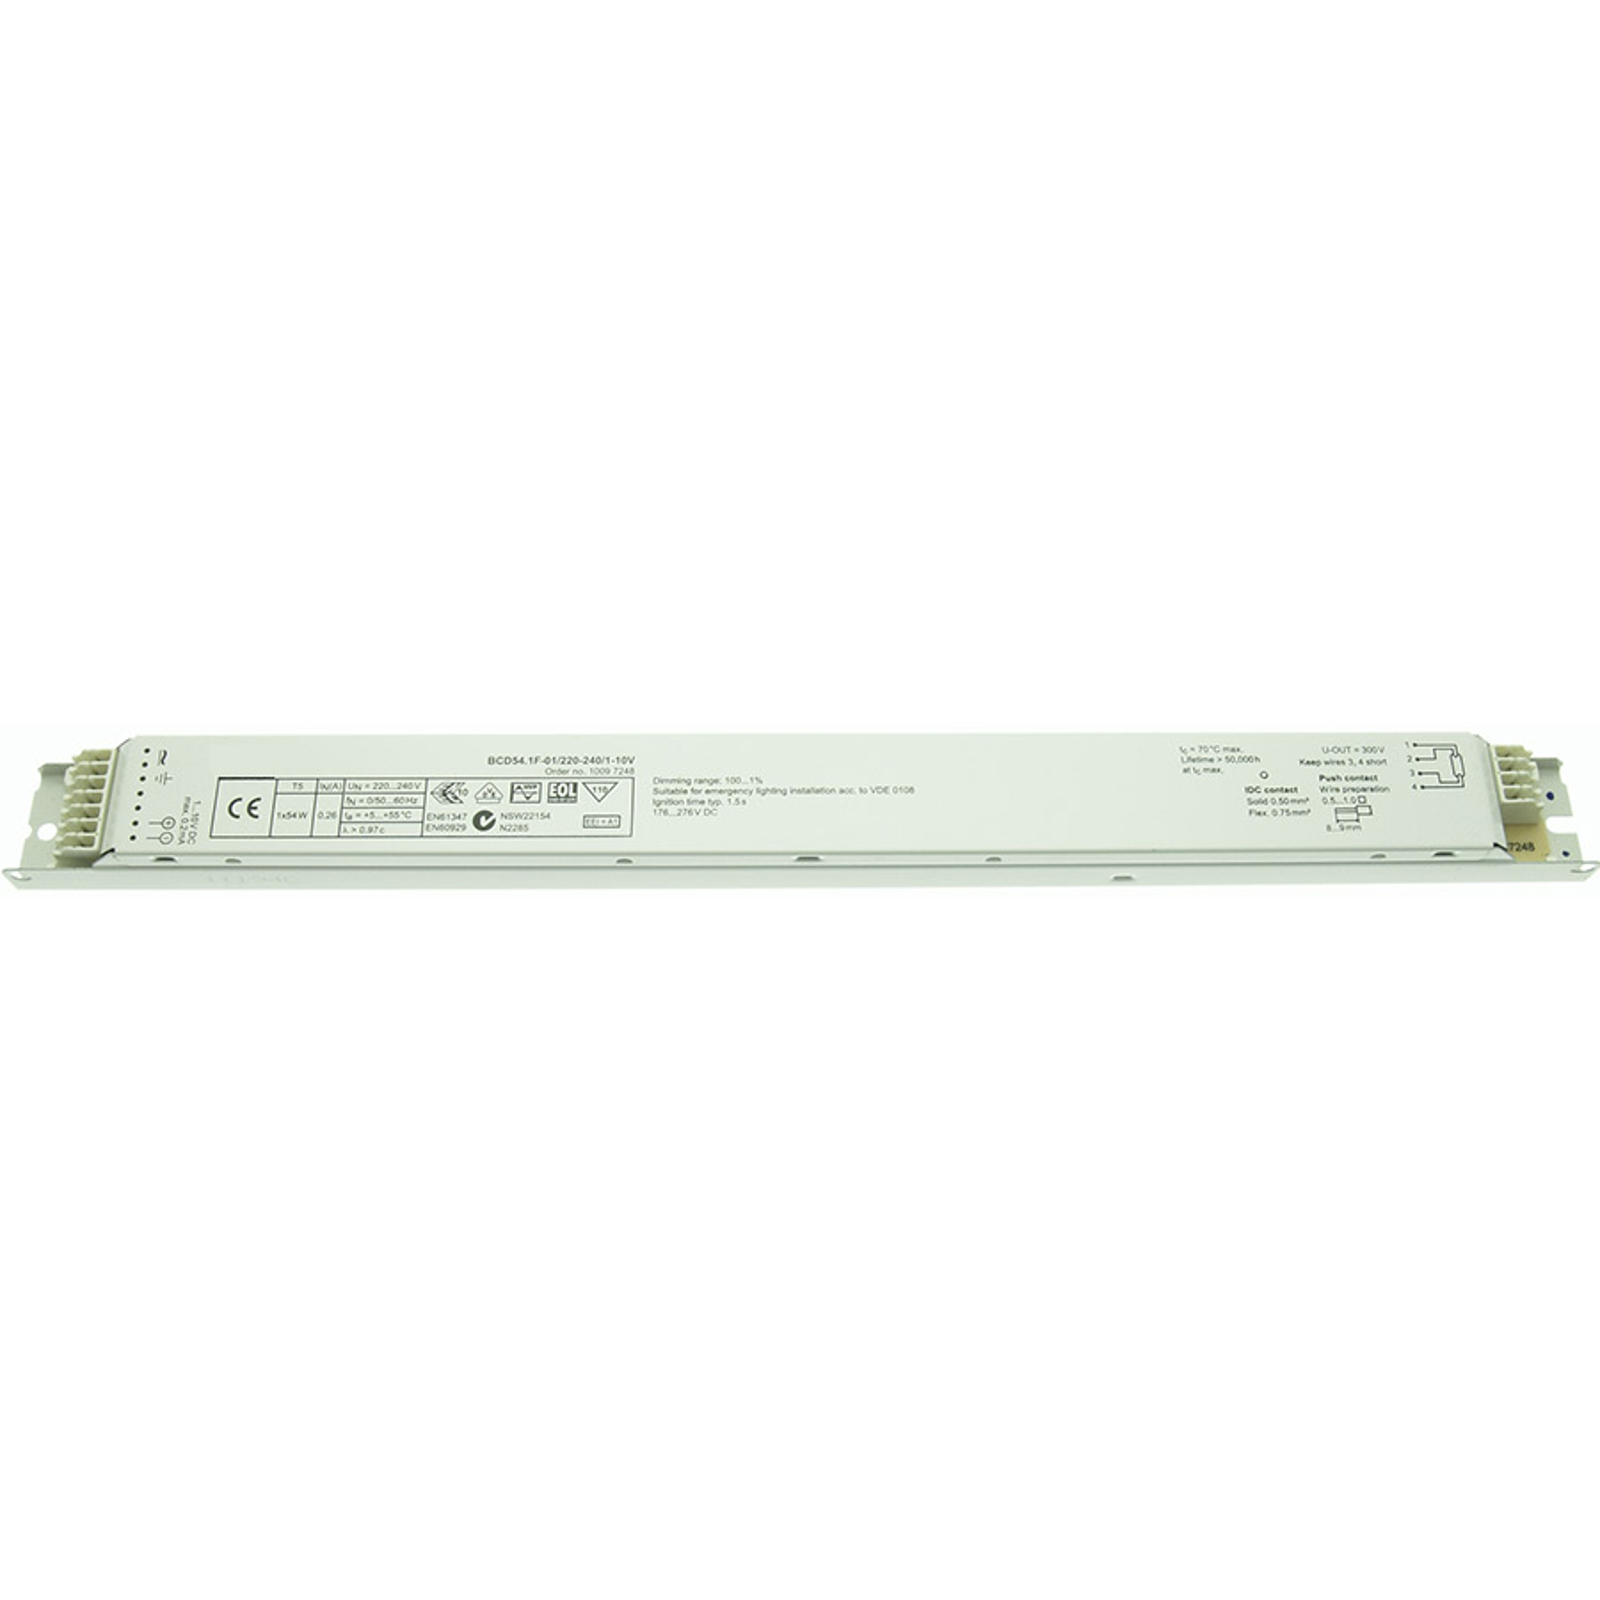 Dimmable EB 1x54 W T5 BCD54.1F-01/220-240/1-10V_4519070_1